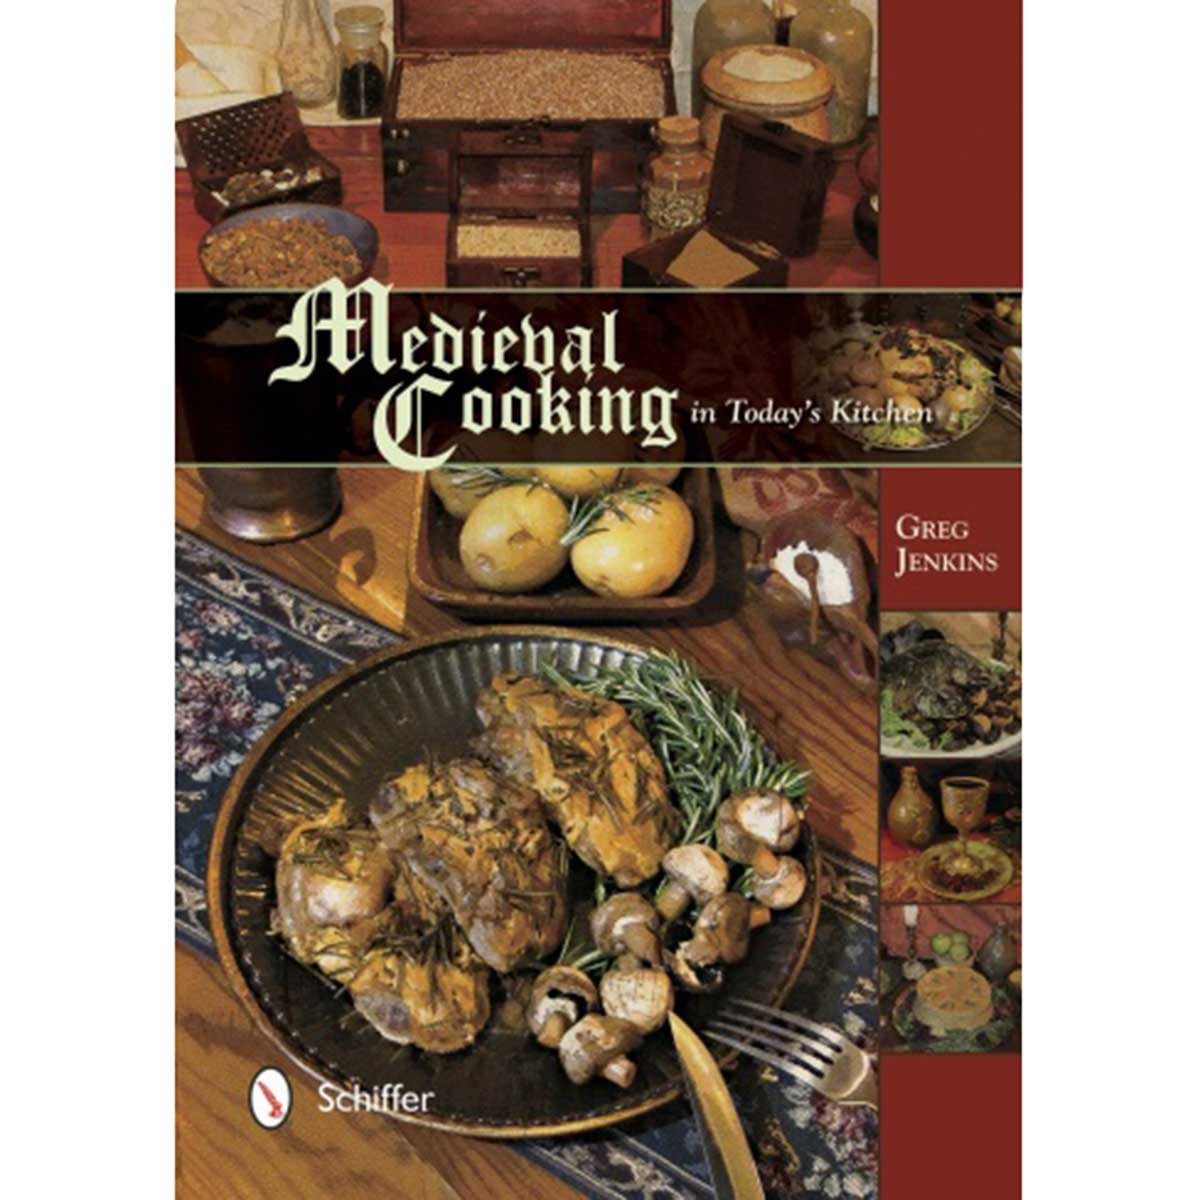 Image of 978-0-7643-4842-6 - Medieval Cooking in Today's Kitchen